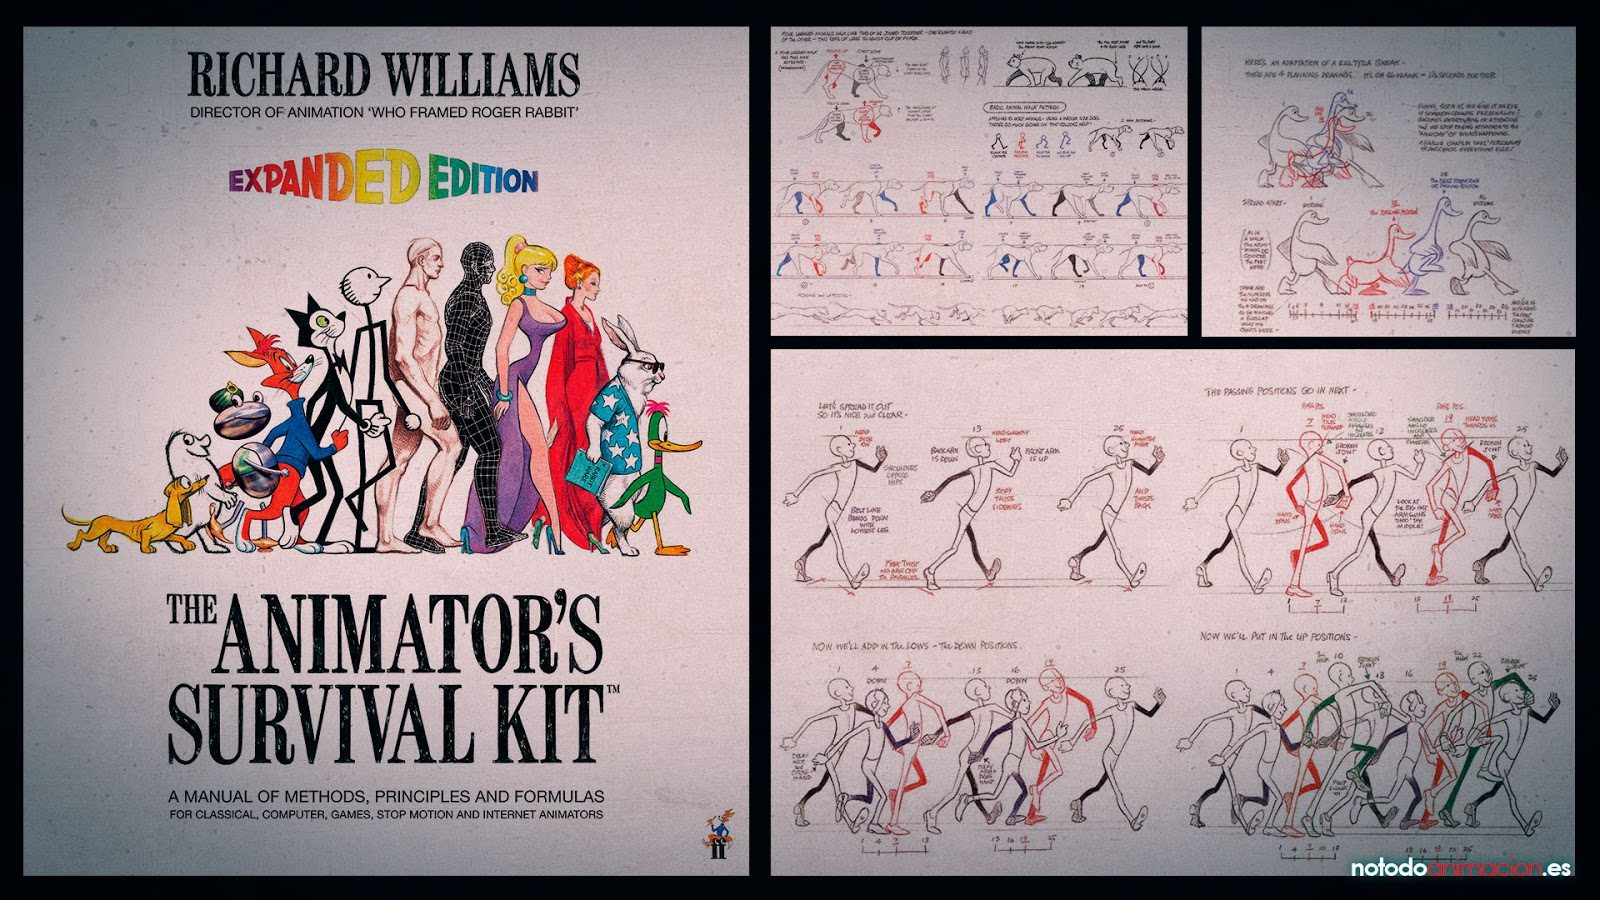 The Animator's Survival Kit - Richard Williams